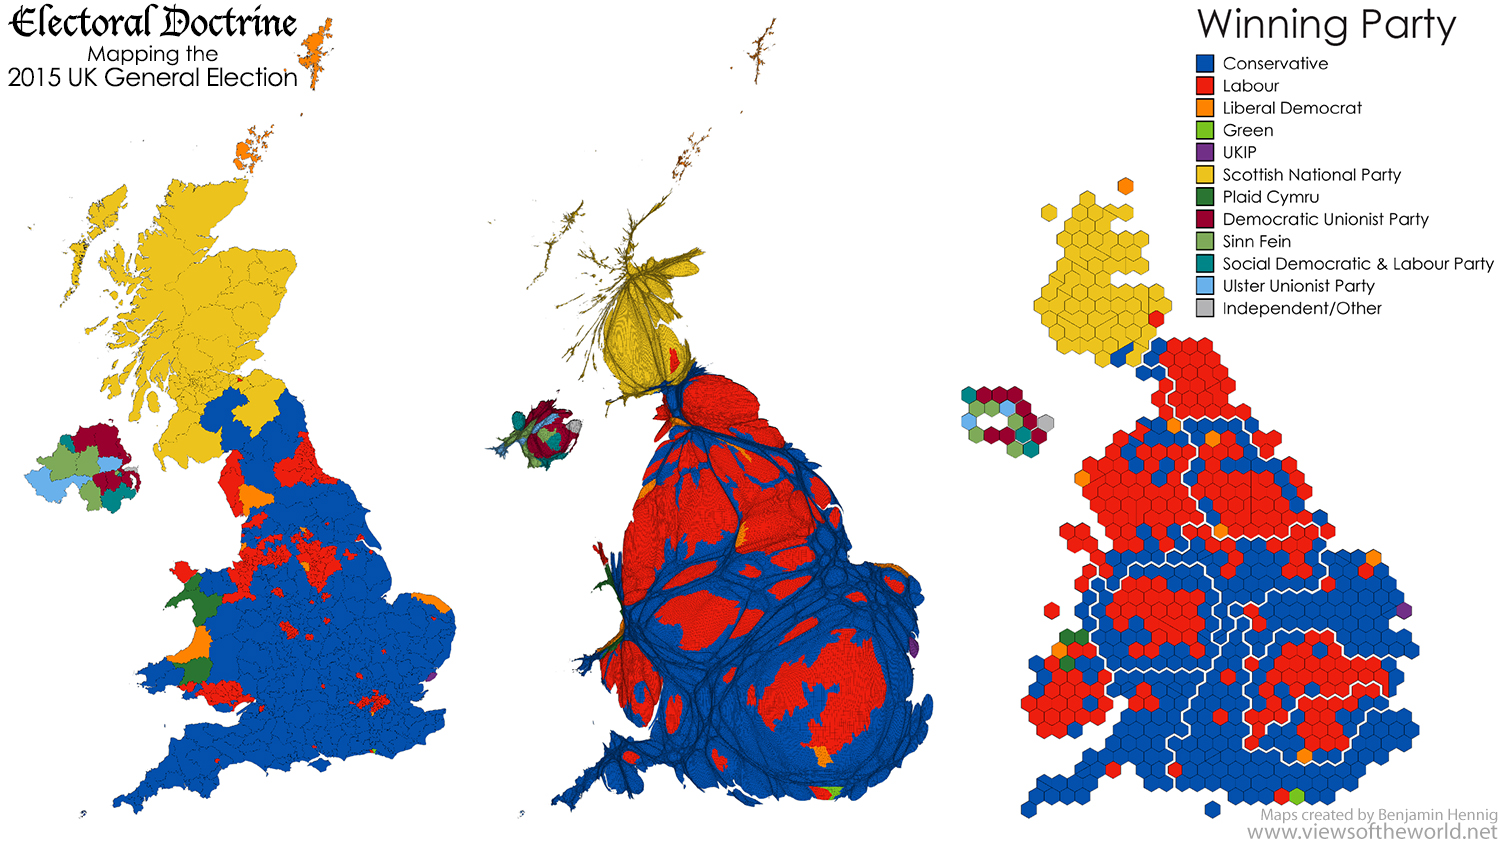 Map series of the 2015 UK General Election